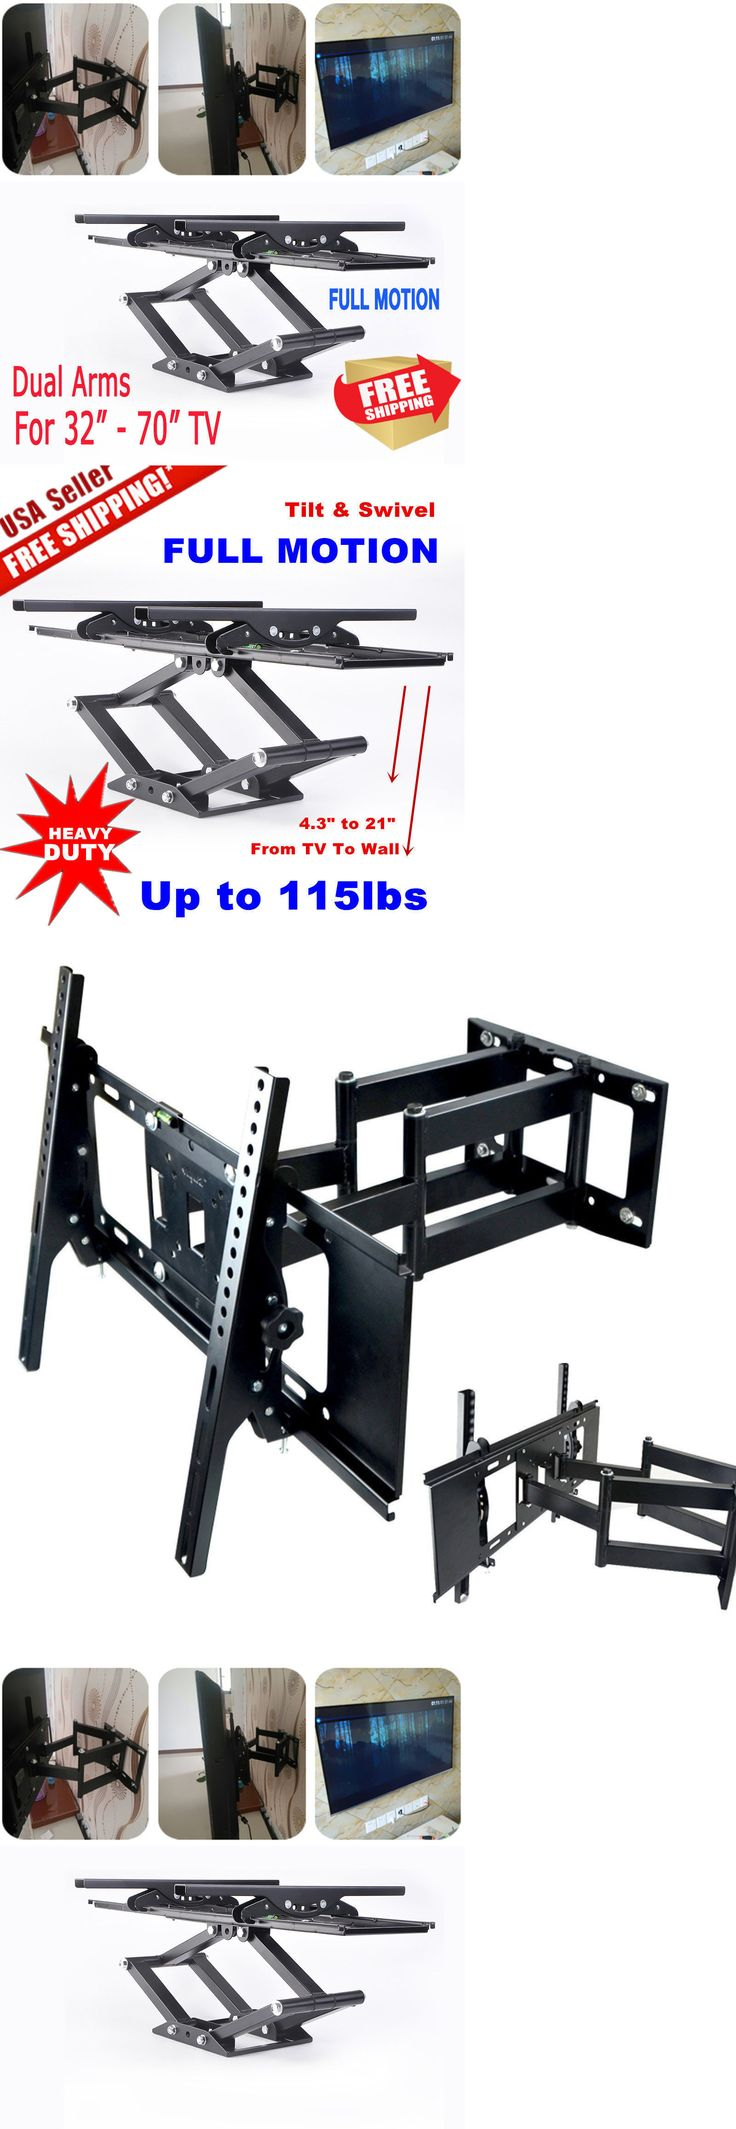 TV Mounts and Brackets: Full Motion Tv Wall Mount Vesa Bracket 32 46 50 55 60 70Inch Led Lcd Flat Screen BUY IT NOW ONLY: $30.85